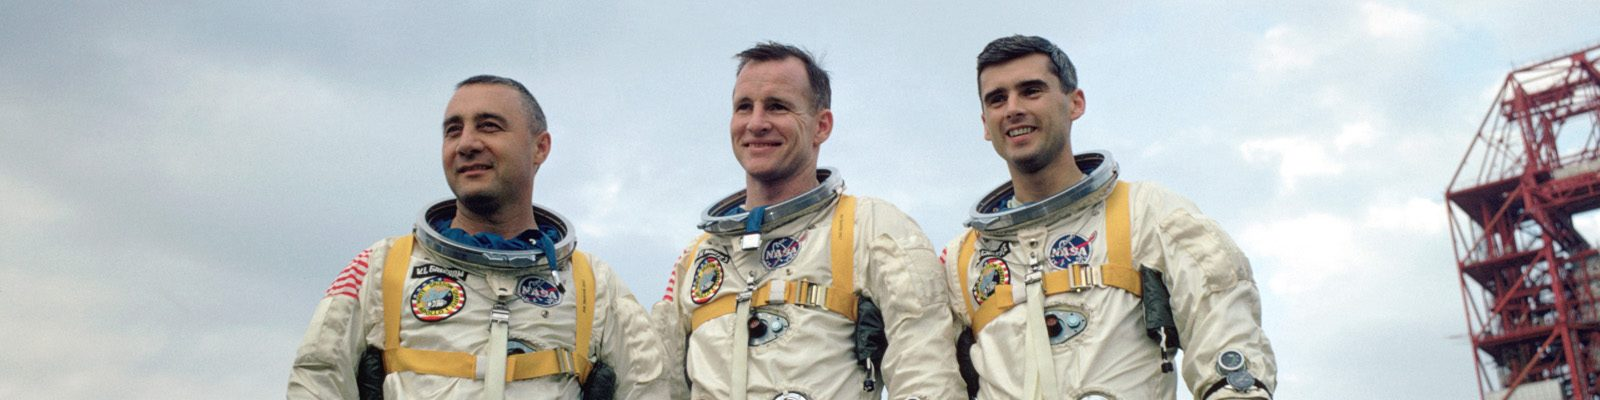 Apollo-1 crew Grissom, White, and Chaffee